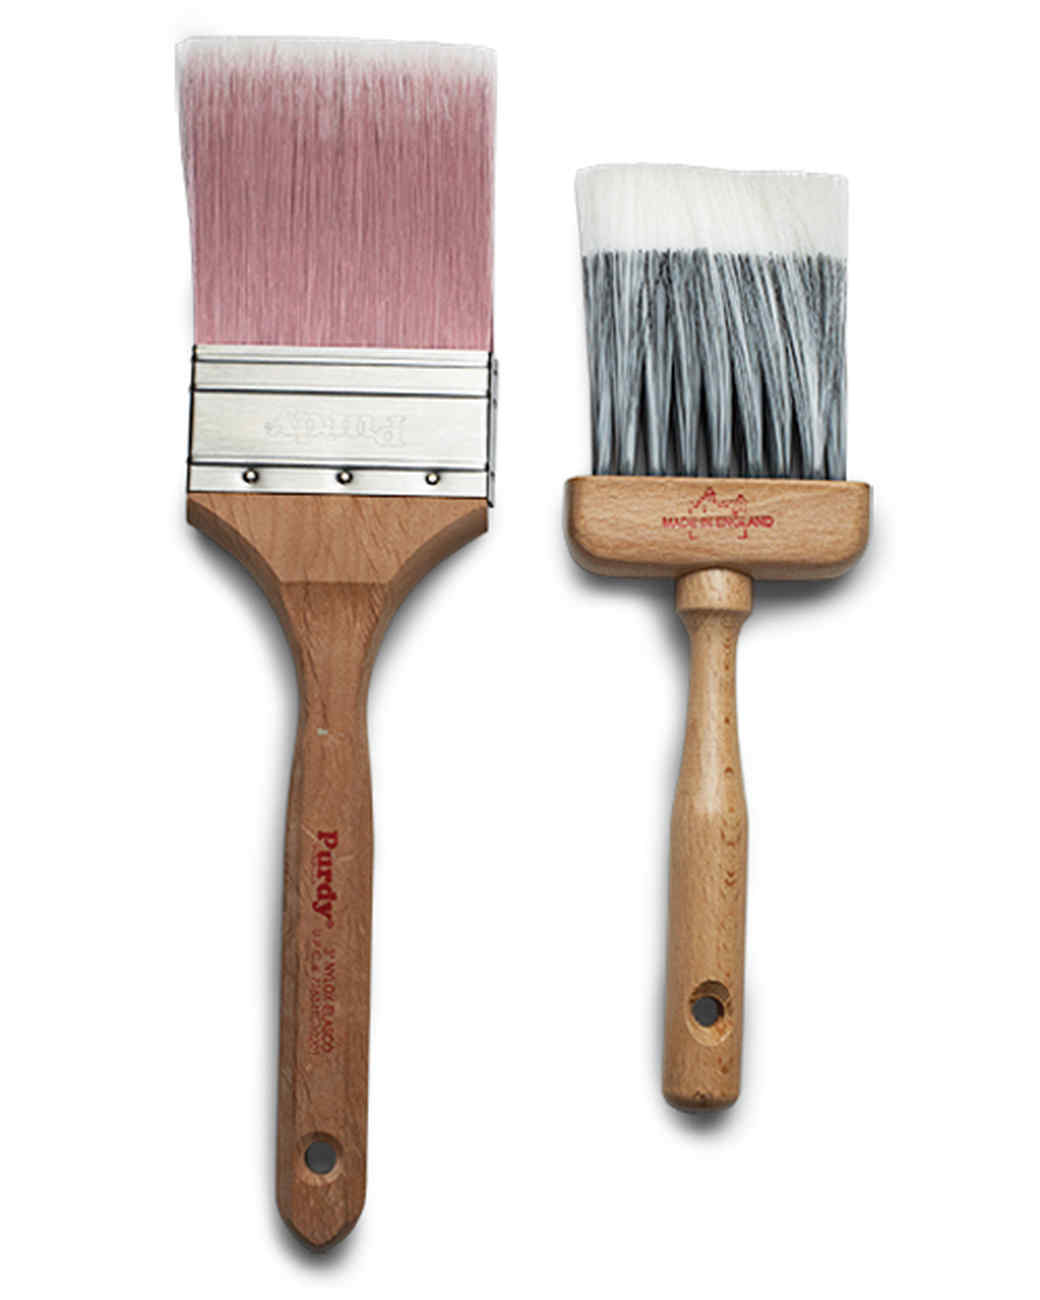 mld105546_0410_paintbrush1s_1.jpg